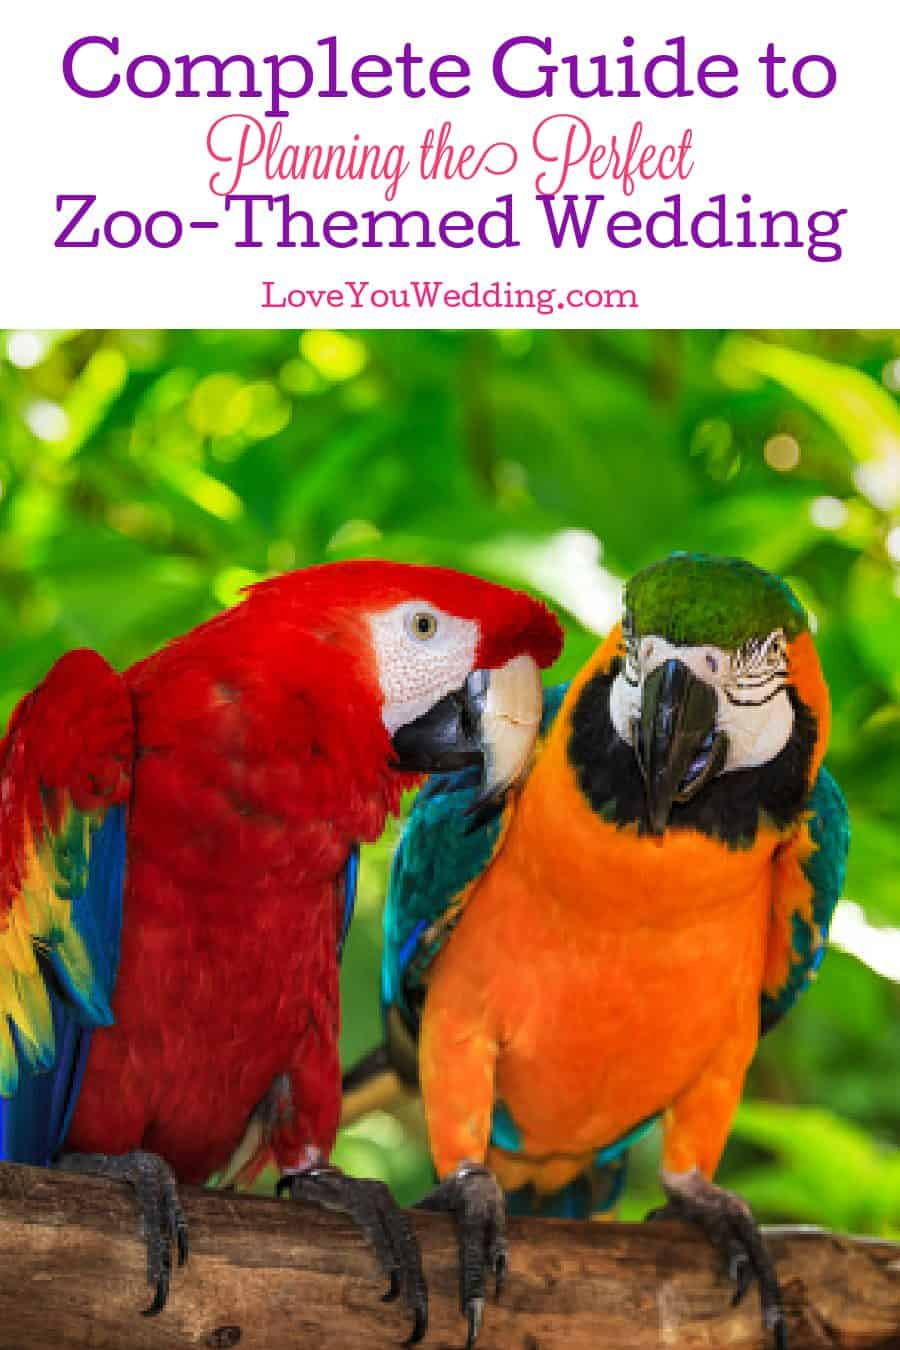 Planning a zoo-themed wedding? Check out our guide to everything from find the perfect venue to giving guests adorable favors!